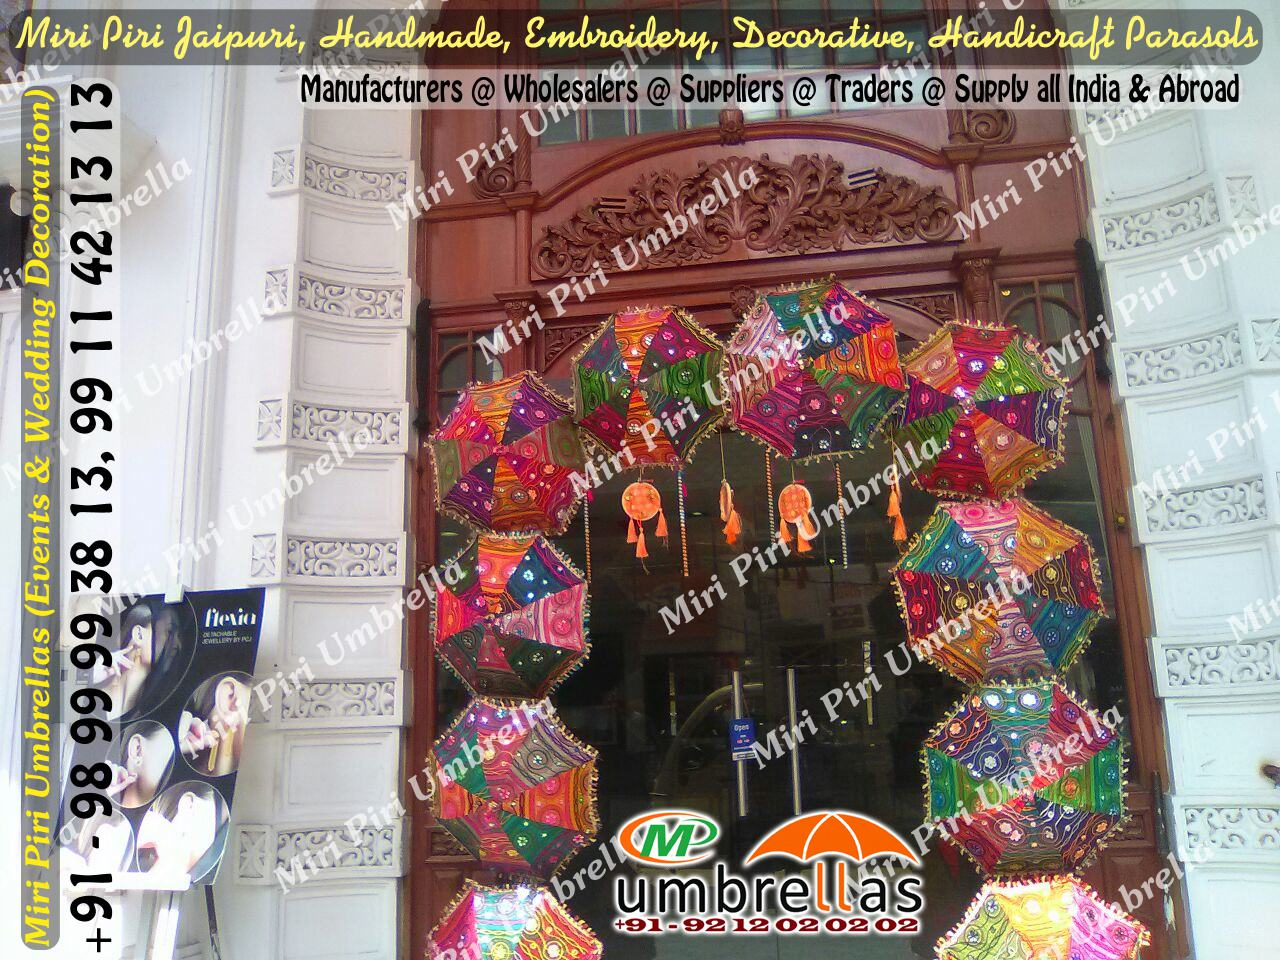 Wedding umbrellas parasols manufacturers suppliers wholesalers decorated umbrellas for weddings small umbrella for decoration umbrellas decoration delhi india junglespirit Images